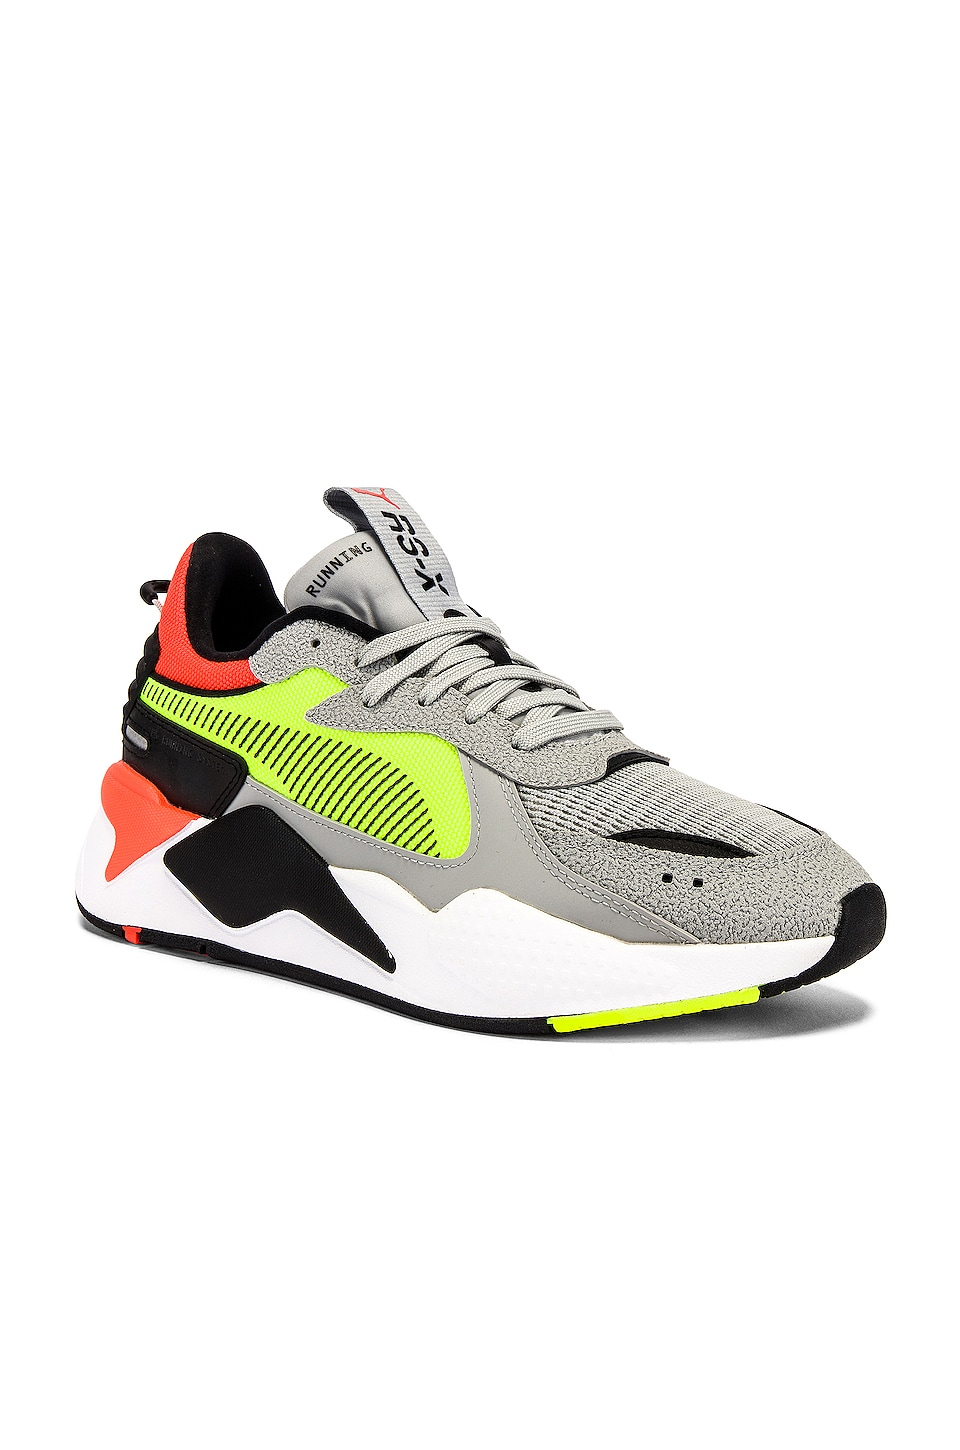 Puma Select RS-X Hard Drive in High Rise & Yellow Alert